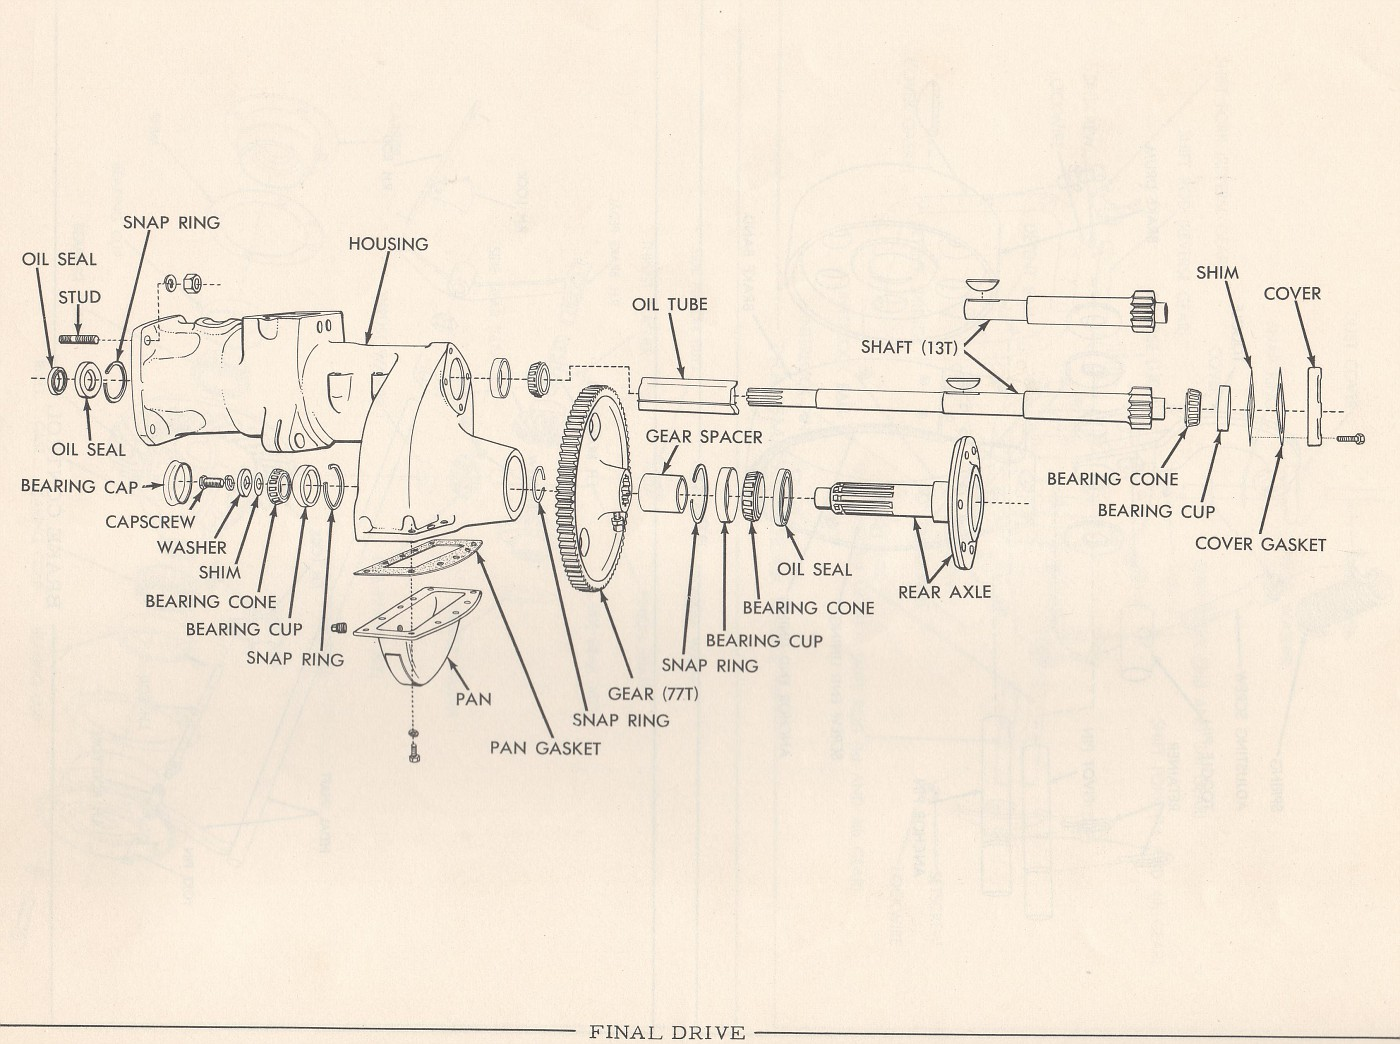 Dropped Washer While Installing New Brakes On Ca Allischalmers Allis Chalmers Tractor Wiring Diagram Of The Housing If By Chance It Did Get Between Drum And Brake Band You Most Likely Will Have To Remove Re Install